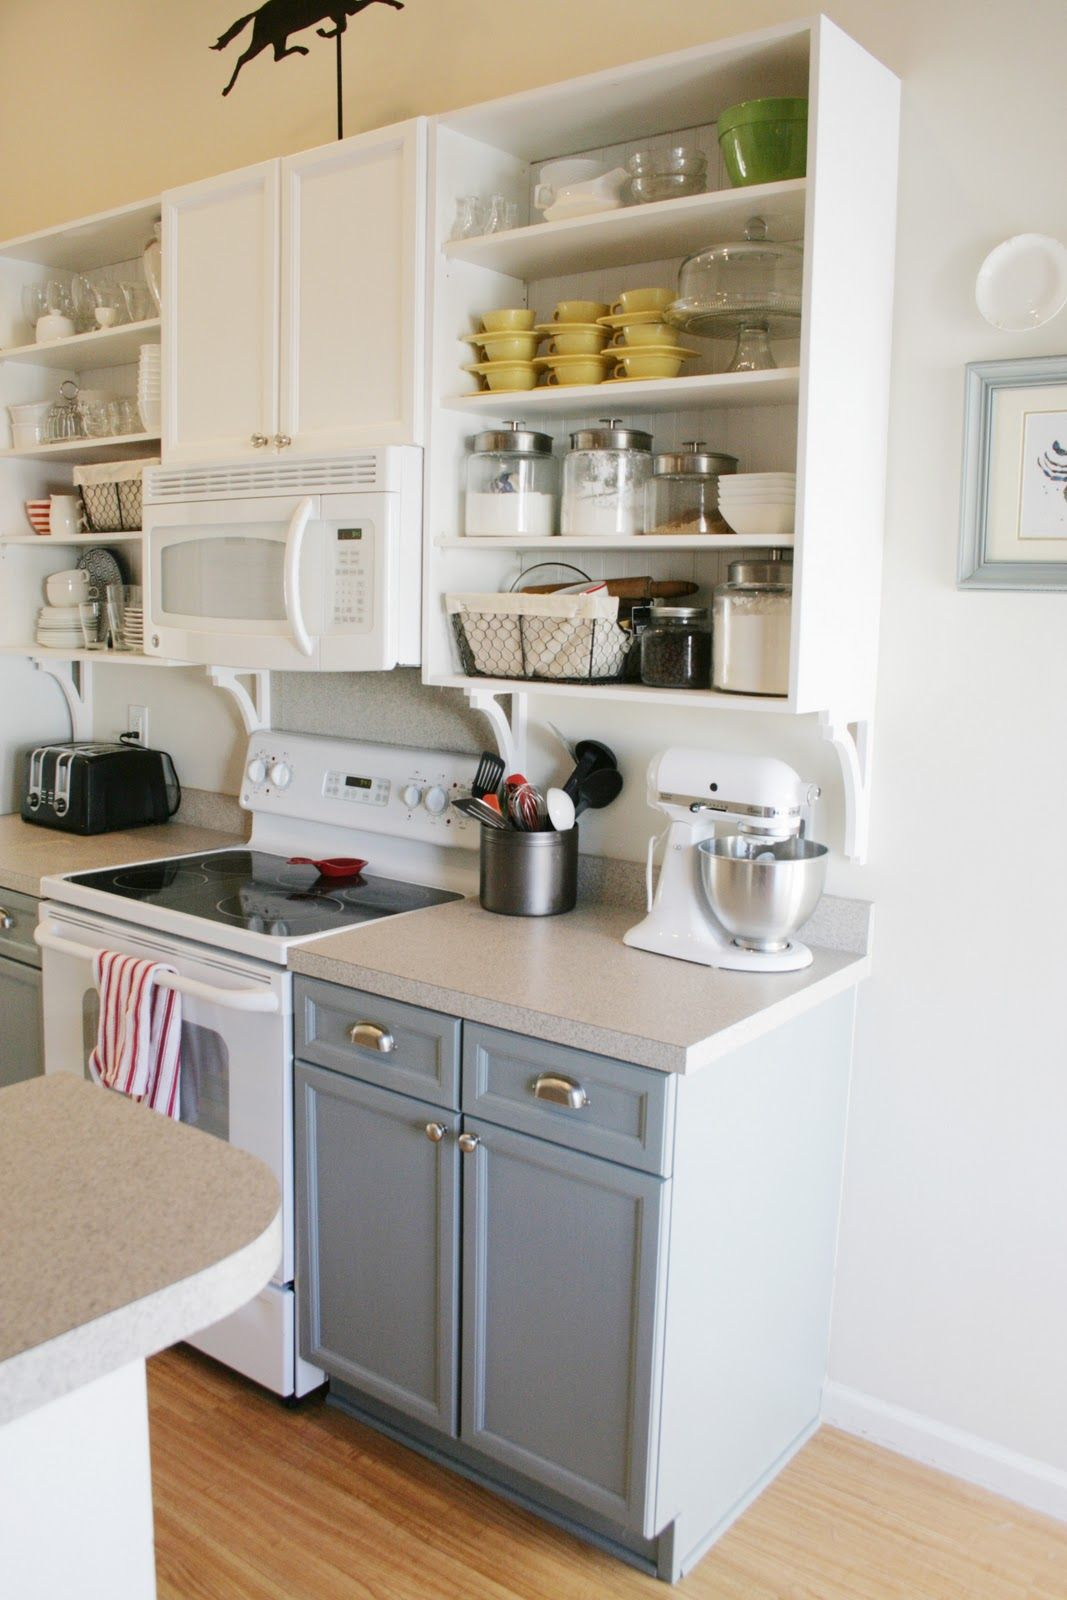 Color Used On The Upper Cabinets Is Rustoleum Cabinet